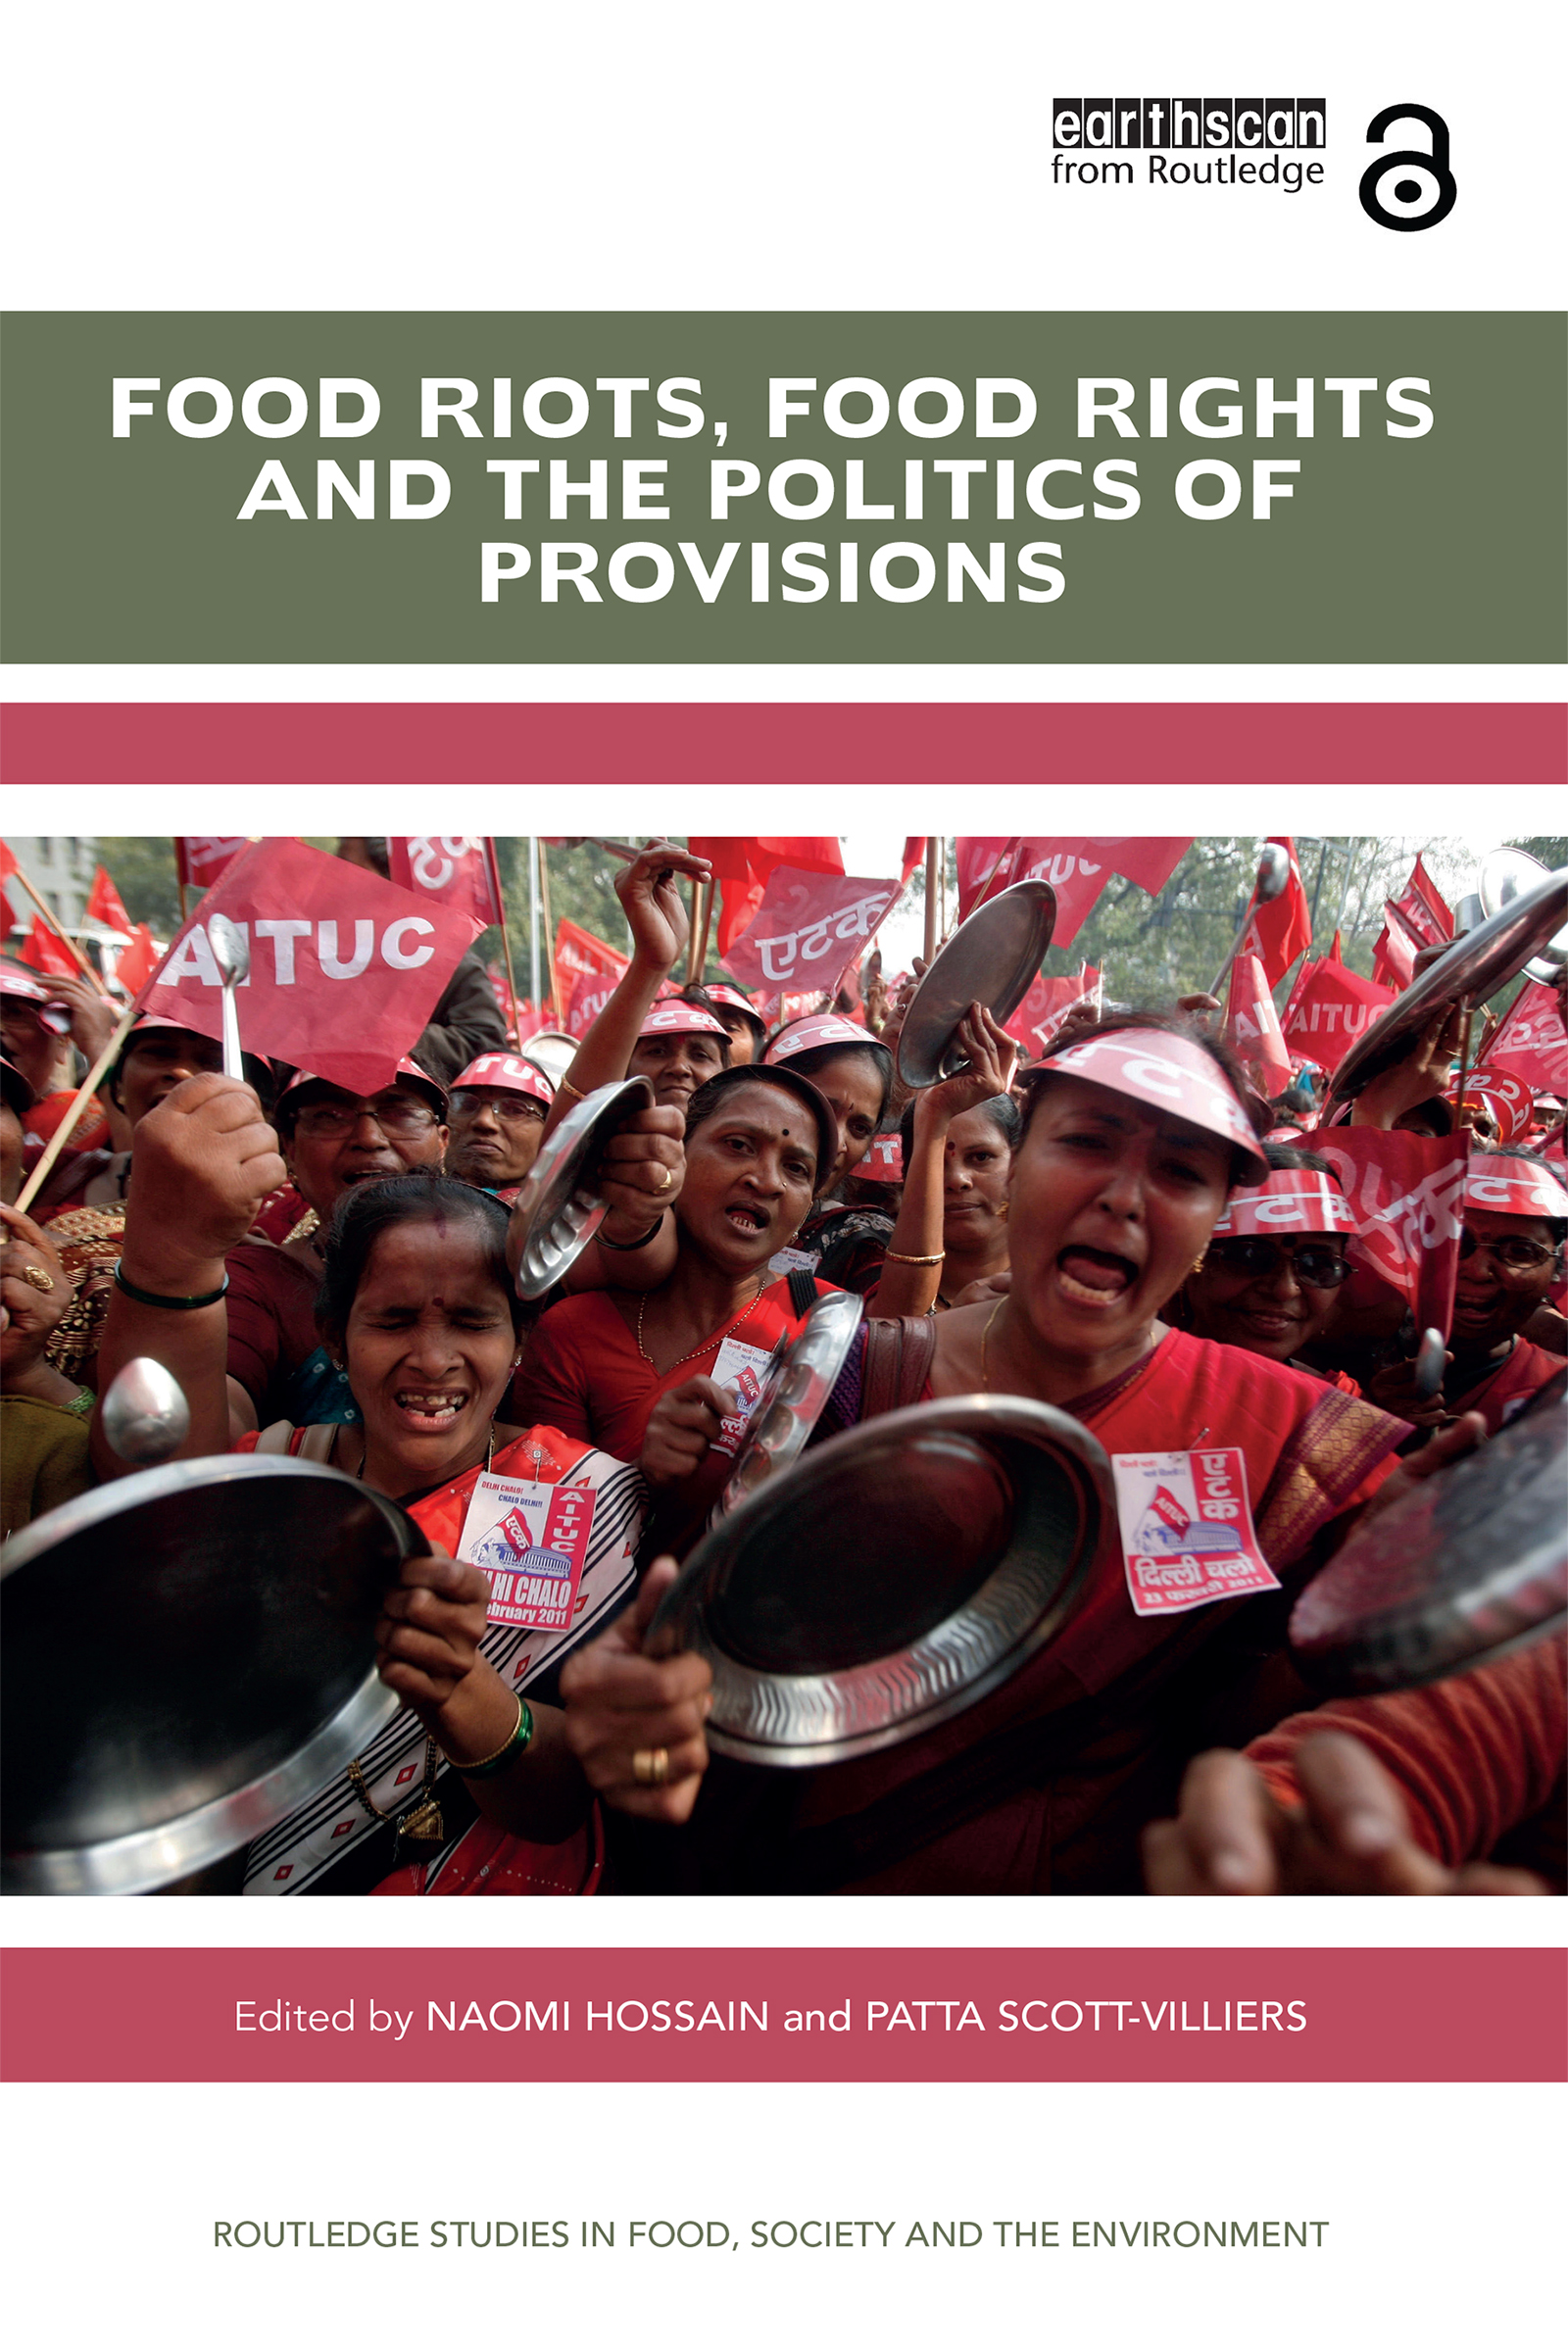 Food Riots, Food Rights and the Politics of Provisions